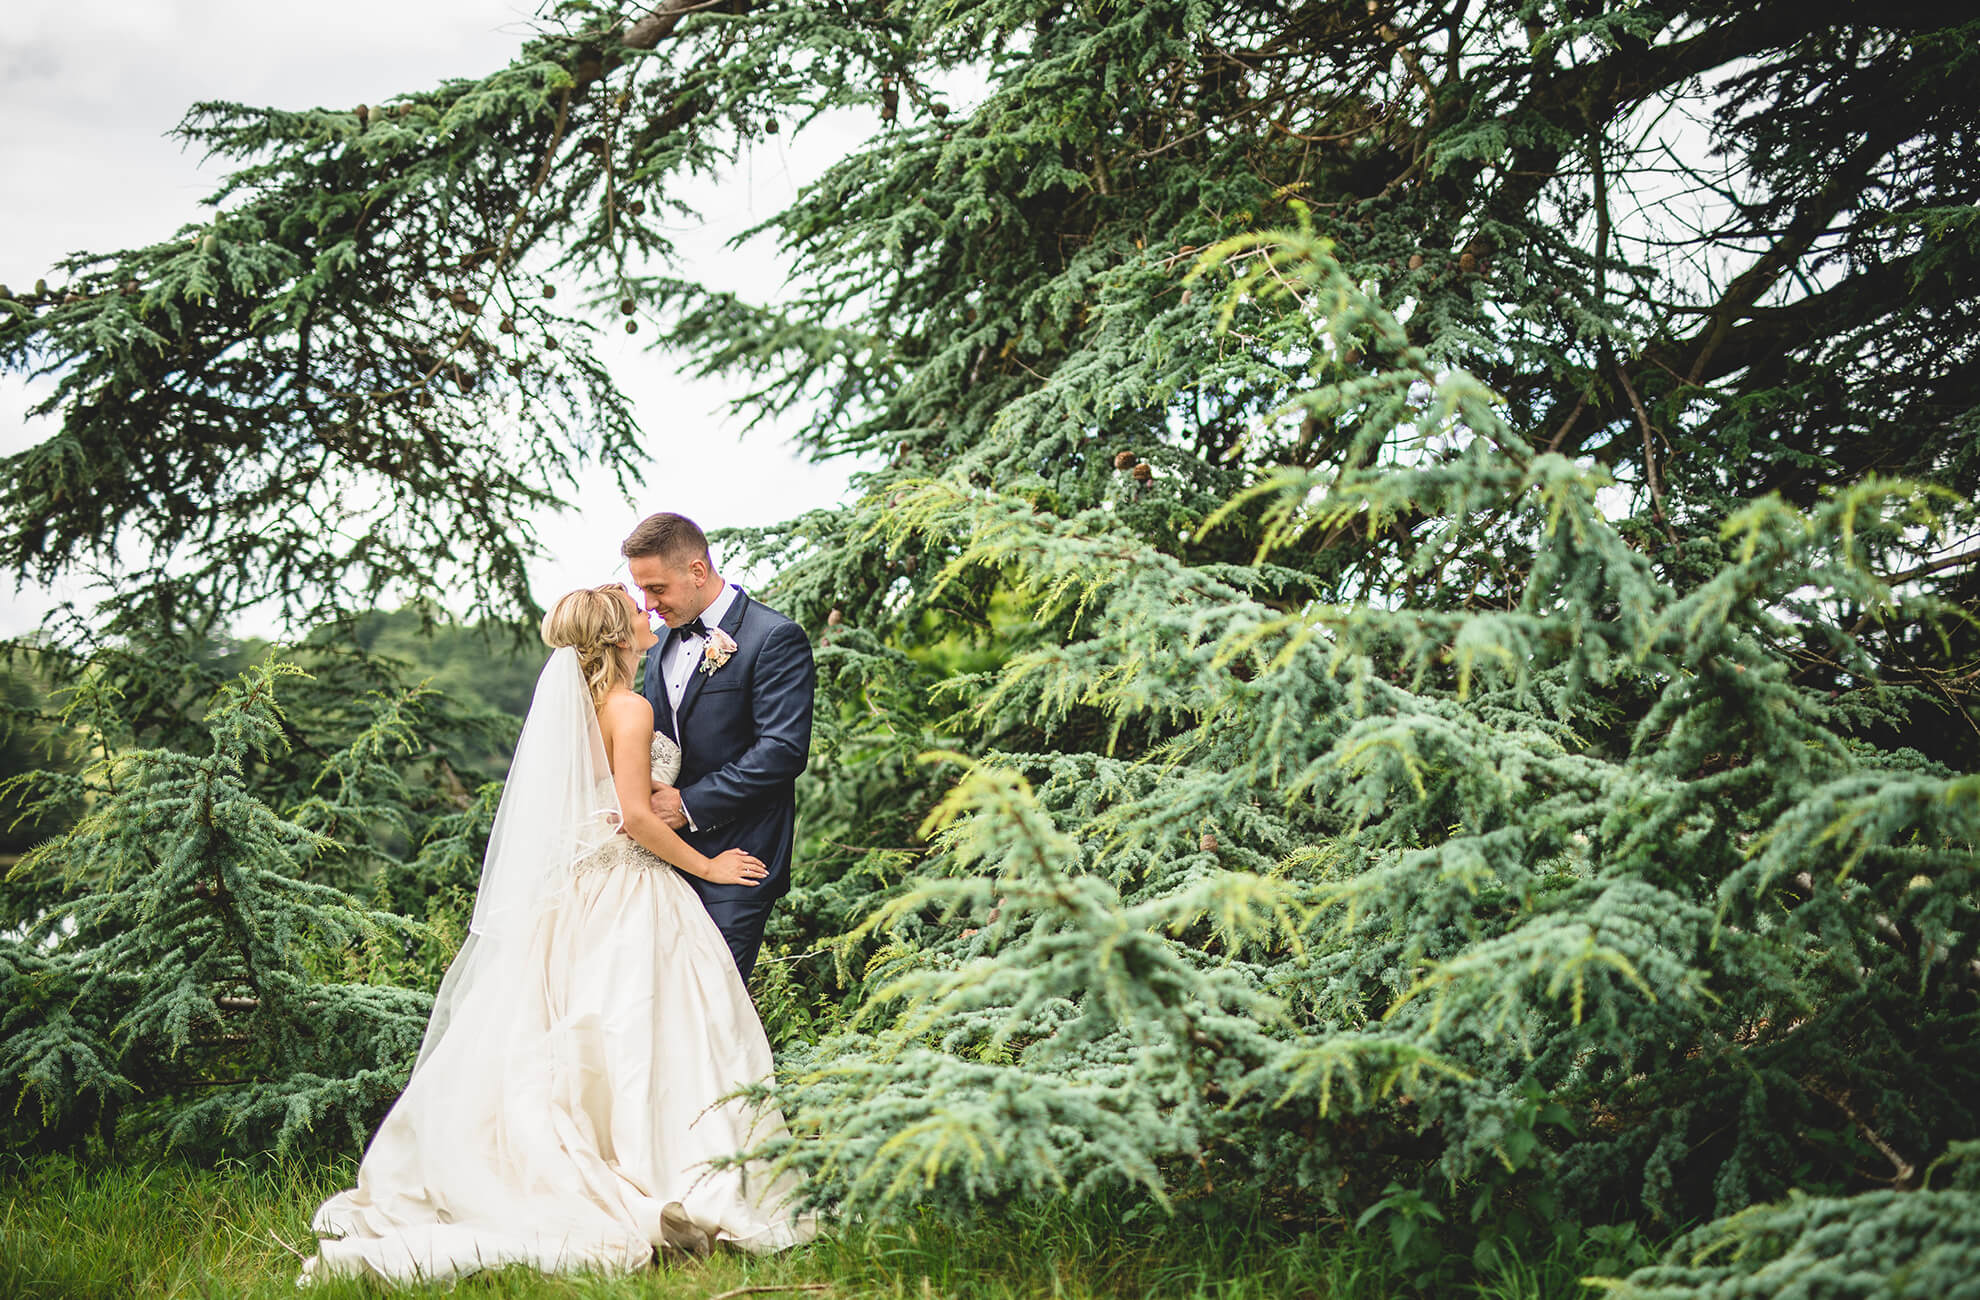 The bride and groom share a special moment in the woodland at Combermere Abbey on their wedding day